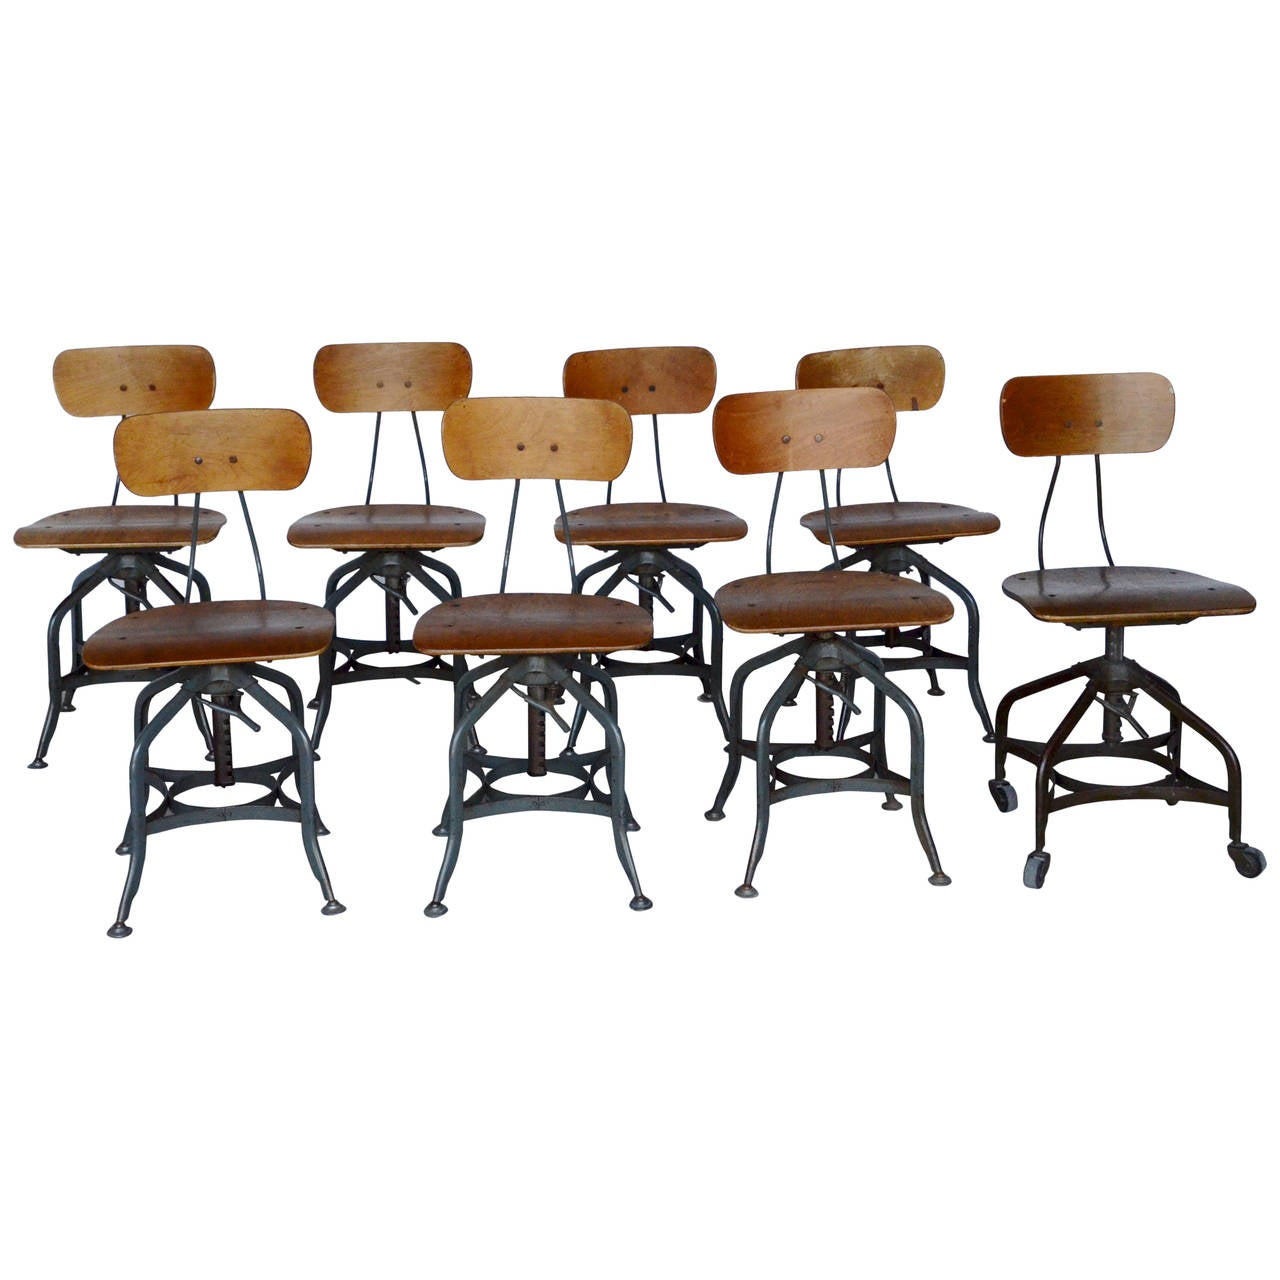 Eight Industrial Toledo Swivel Chairs By Uhl Steel At 1stdibs